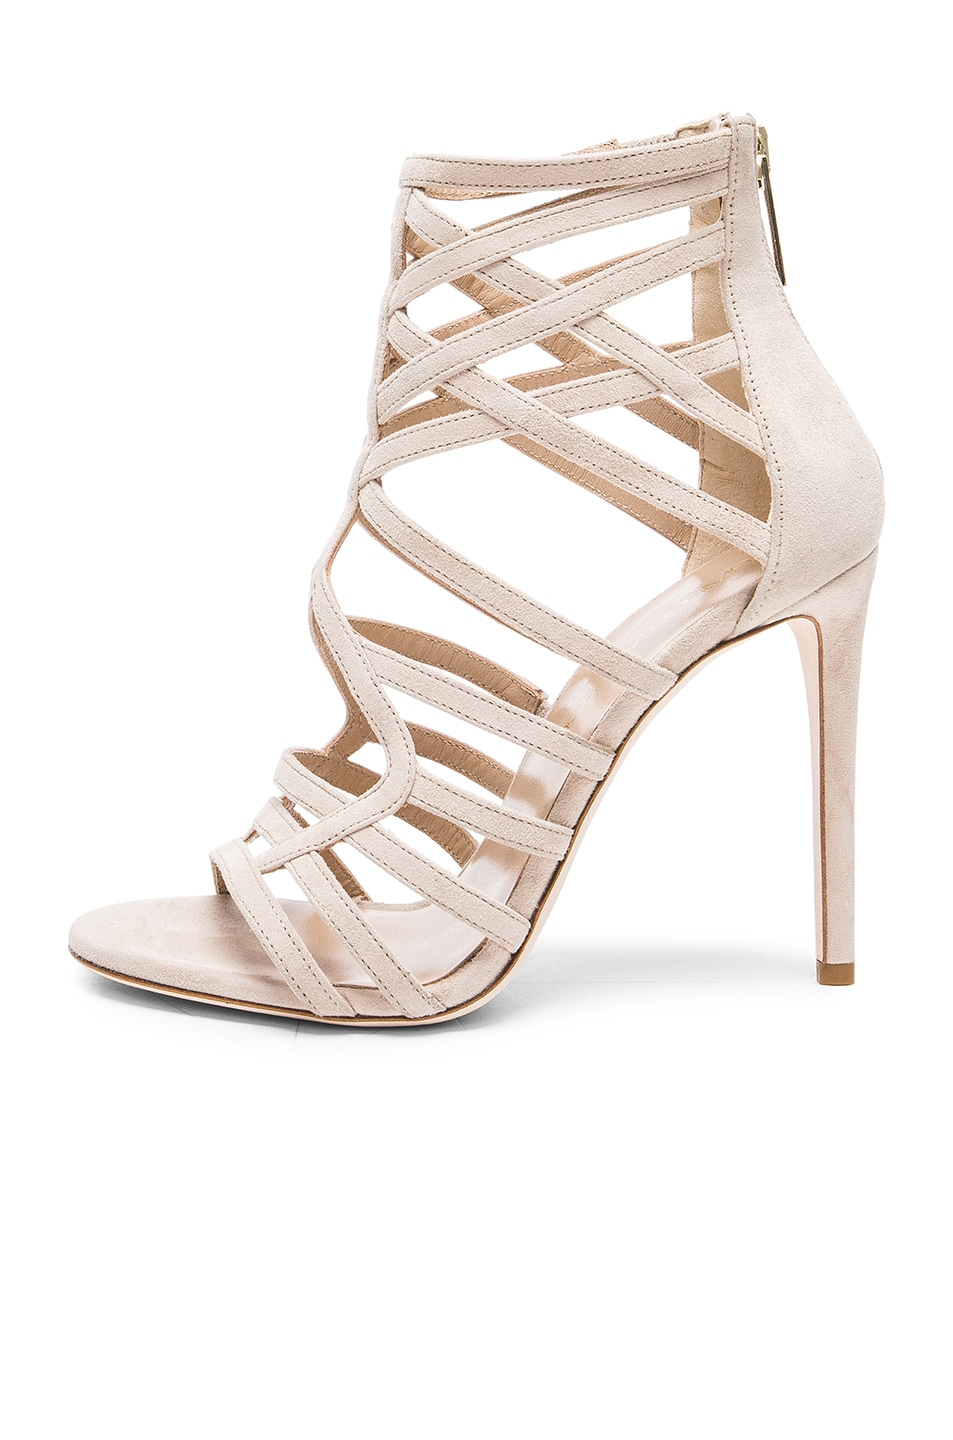 Image 5 of Tamara Mellon Goddess Nappa & Suede Sandals in Nude